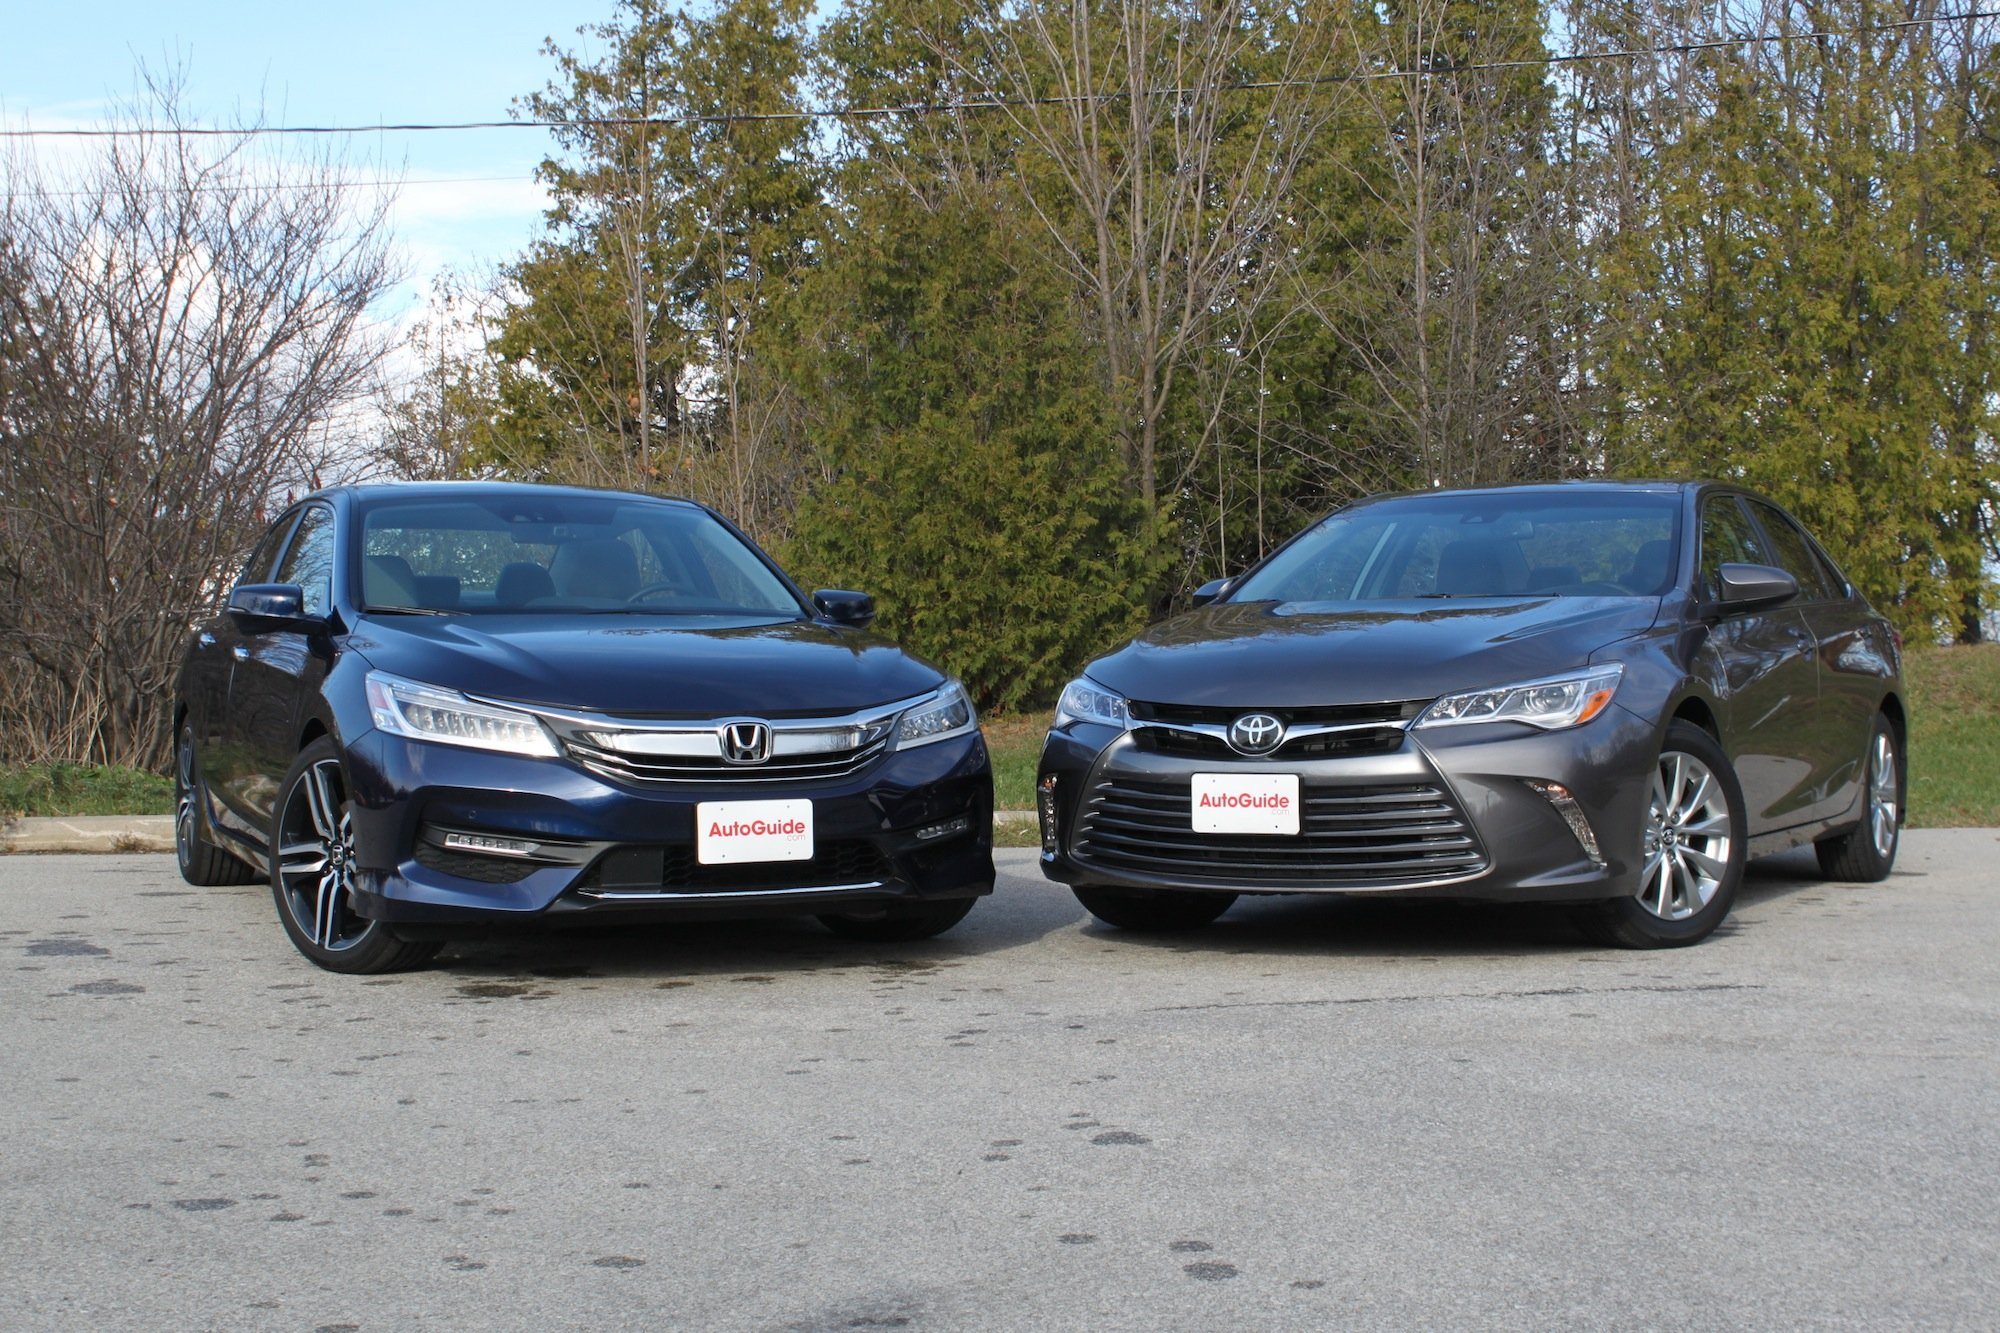 2016 Toyota Camry Vs Honda Accord Comparison 6